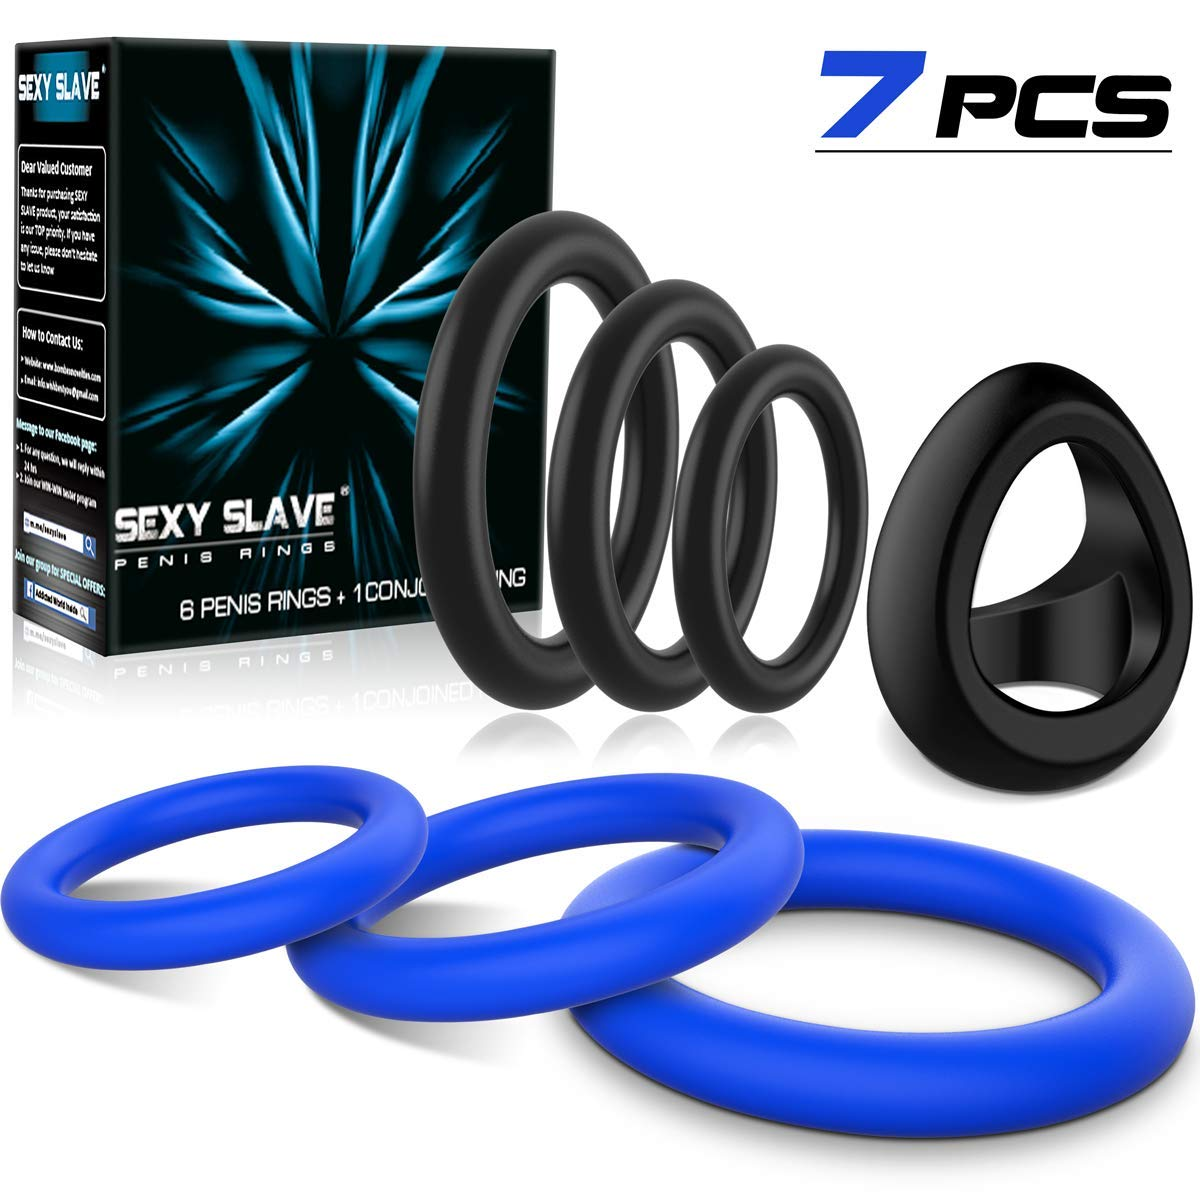 Silicone Cock Rings Set, Sexy Slave Stretchy Penis Rings for Longer & Harder Erection, Sex Toy for Men Couple(7pcs) by SEXY SLAVE